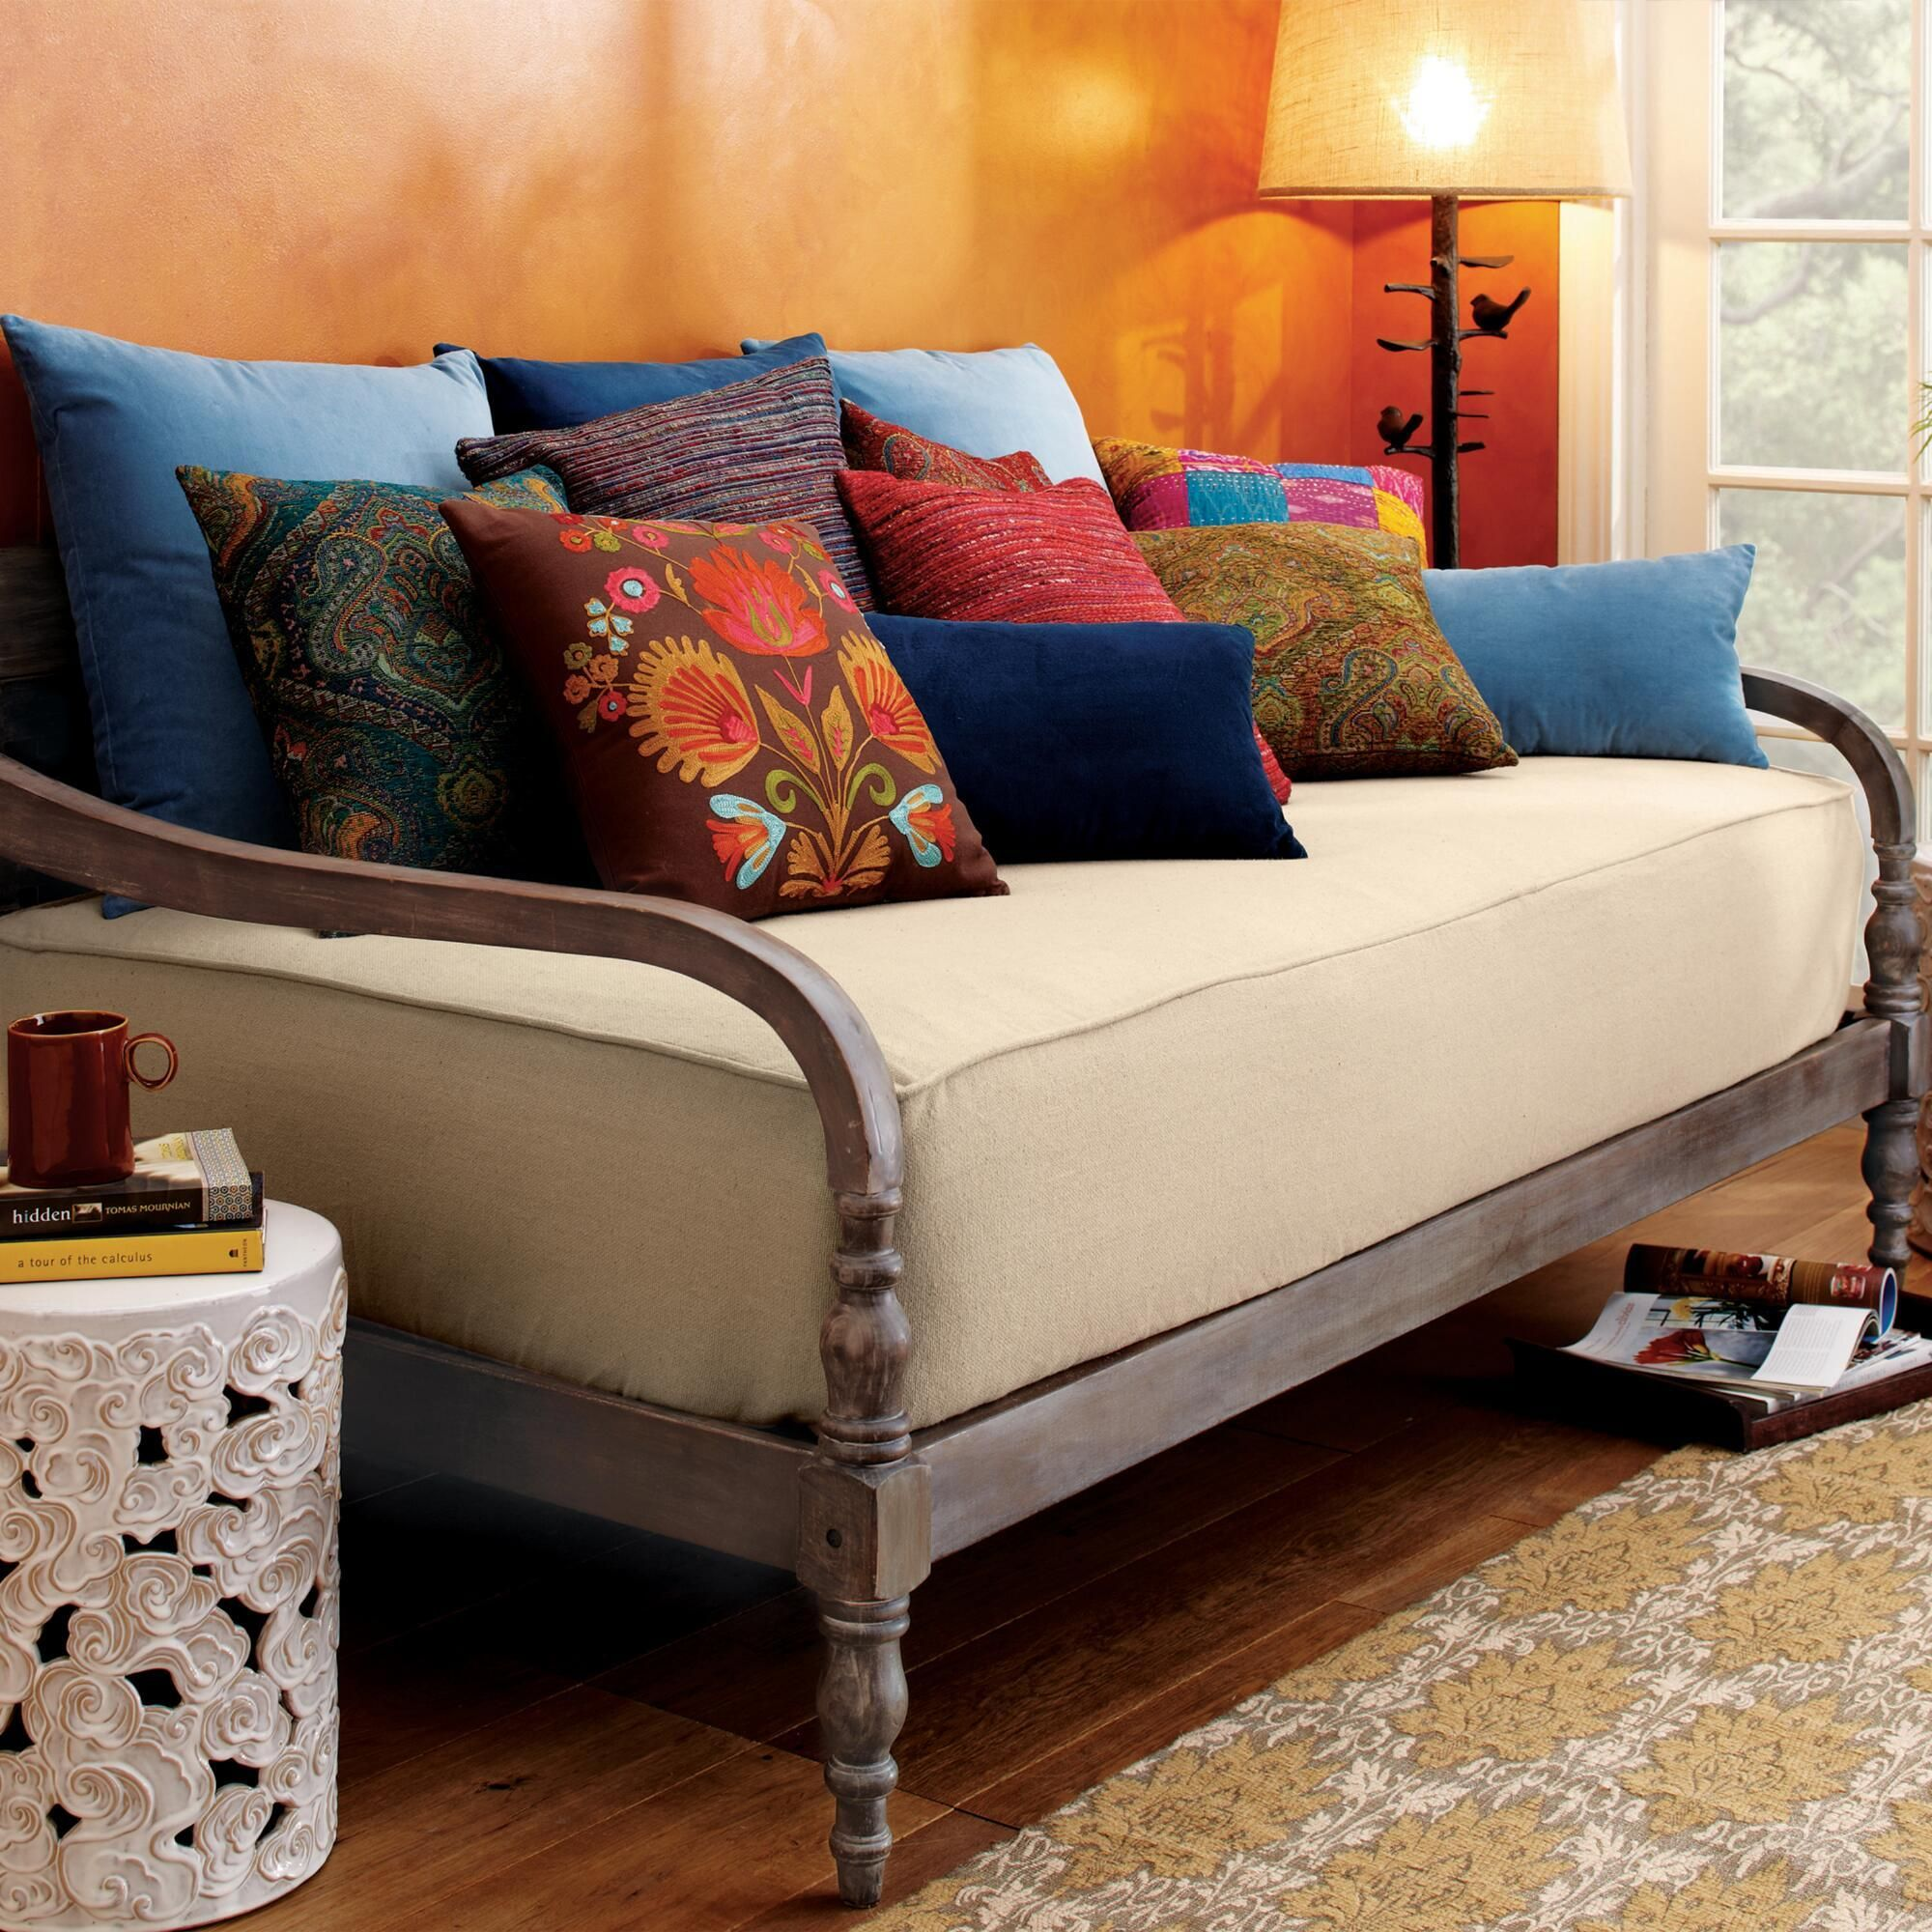 indonesian daybed frame daybed patios and living rooms. Black Bedroom Furniture Sets. Home Design Ideas